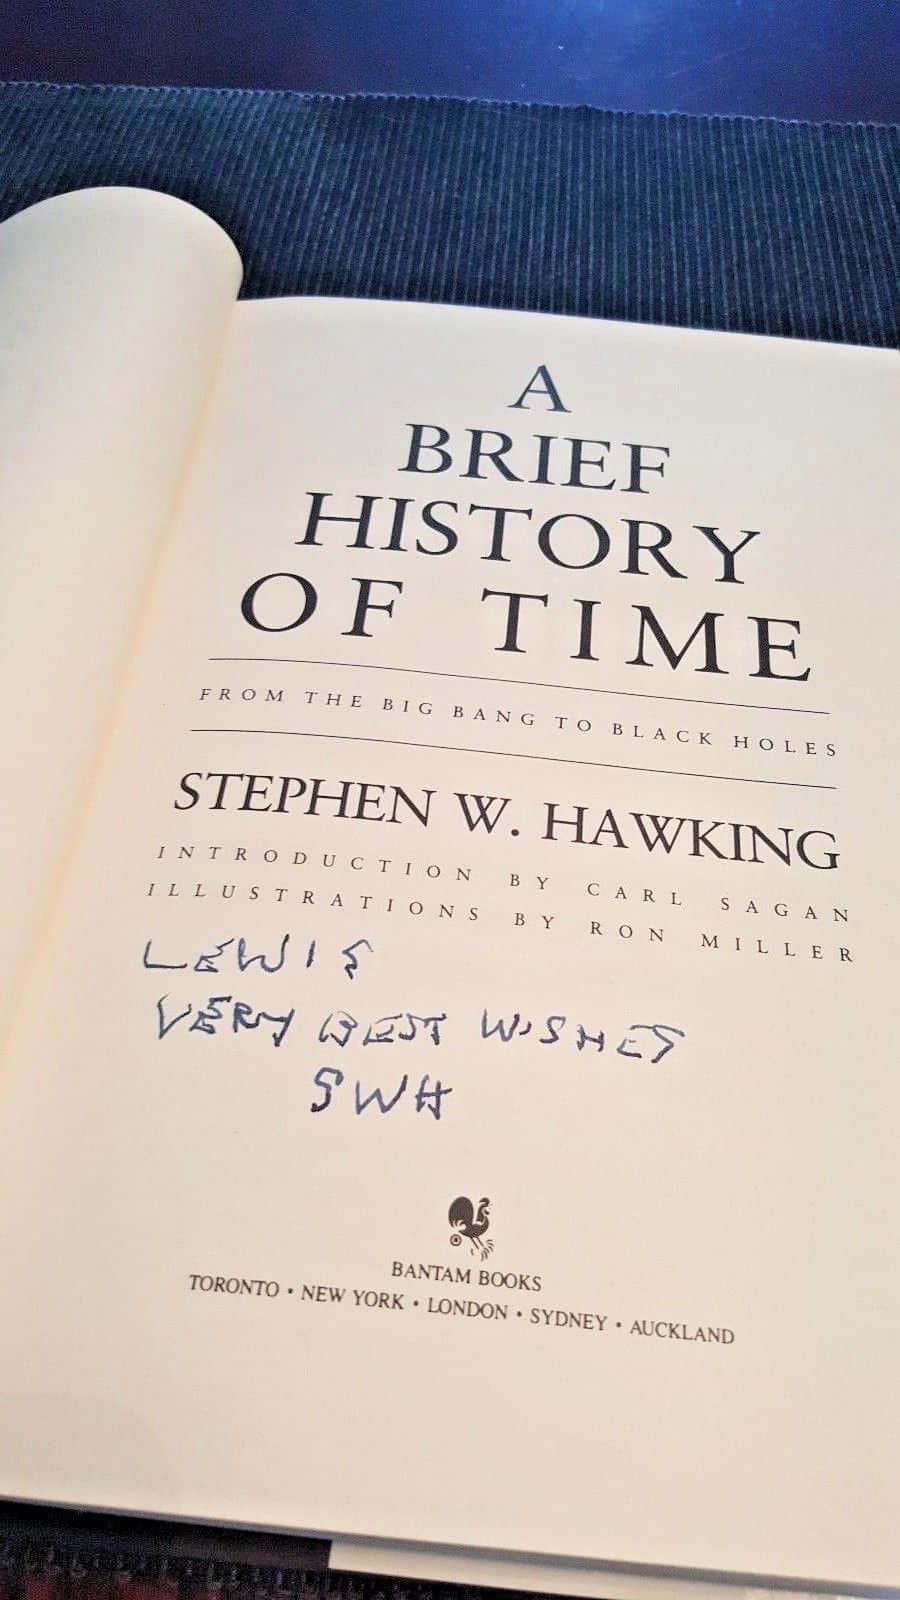 Stephen Hawking Signed Book Autograph Signature Thumb Print Stamp 1st Edition UK 4